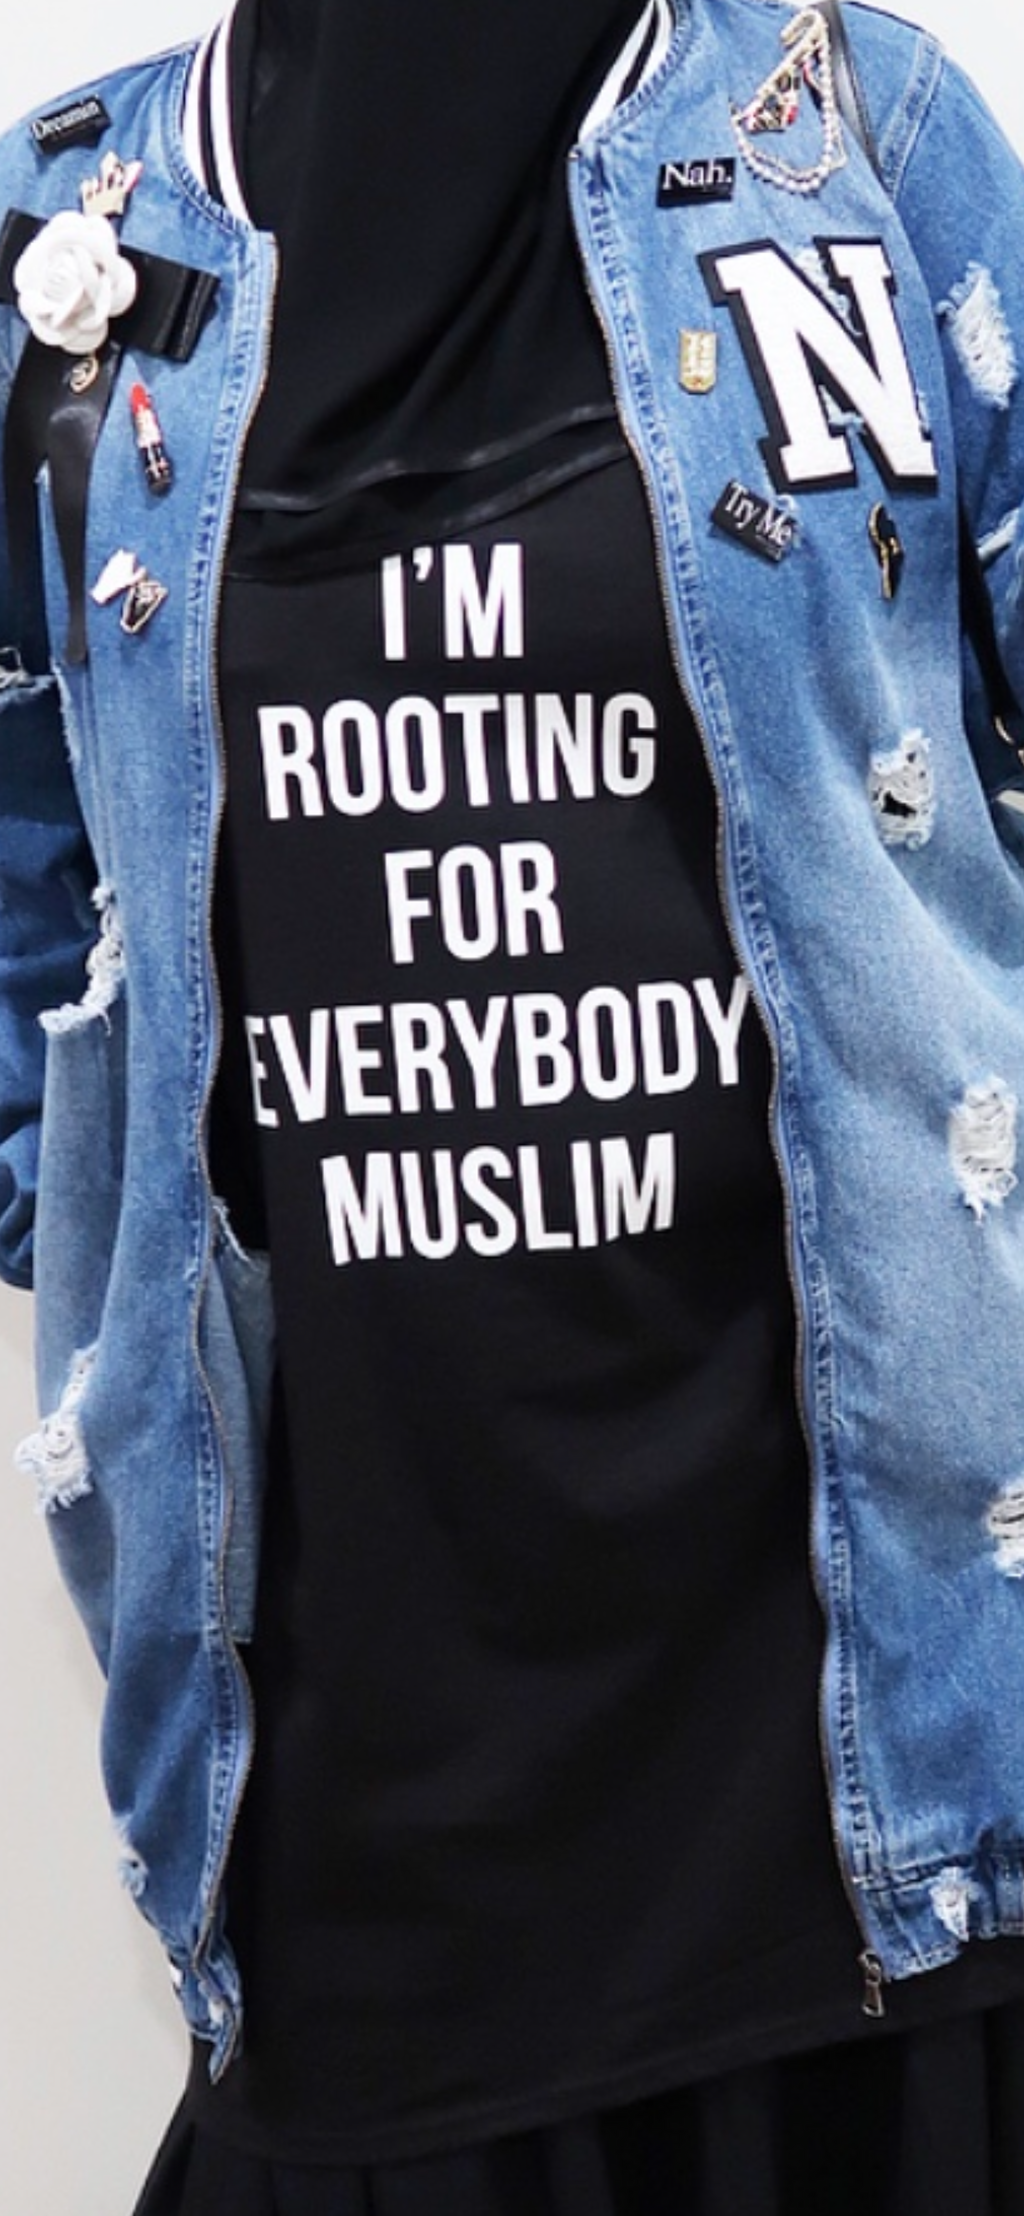 ROOTING FOR EVERYBODY MUSLIM Graphic Tee